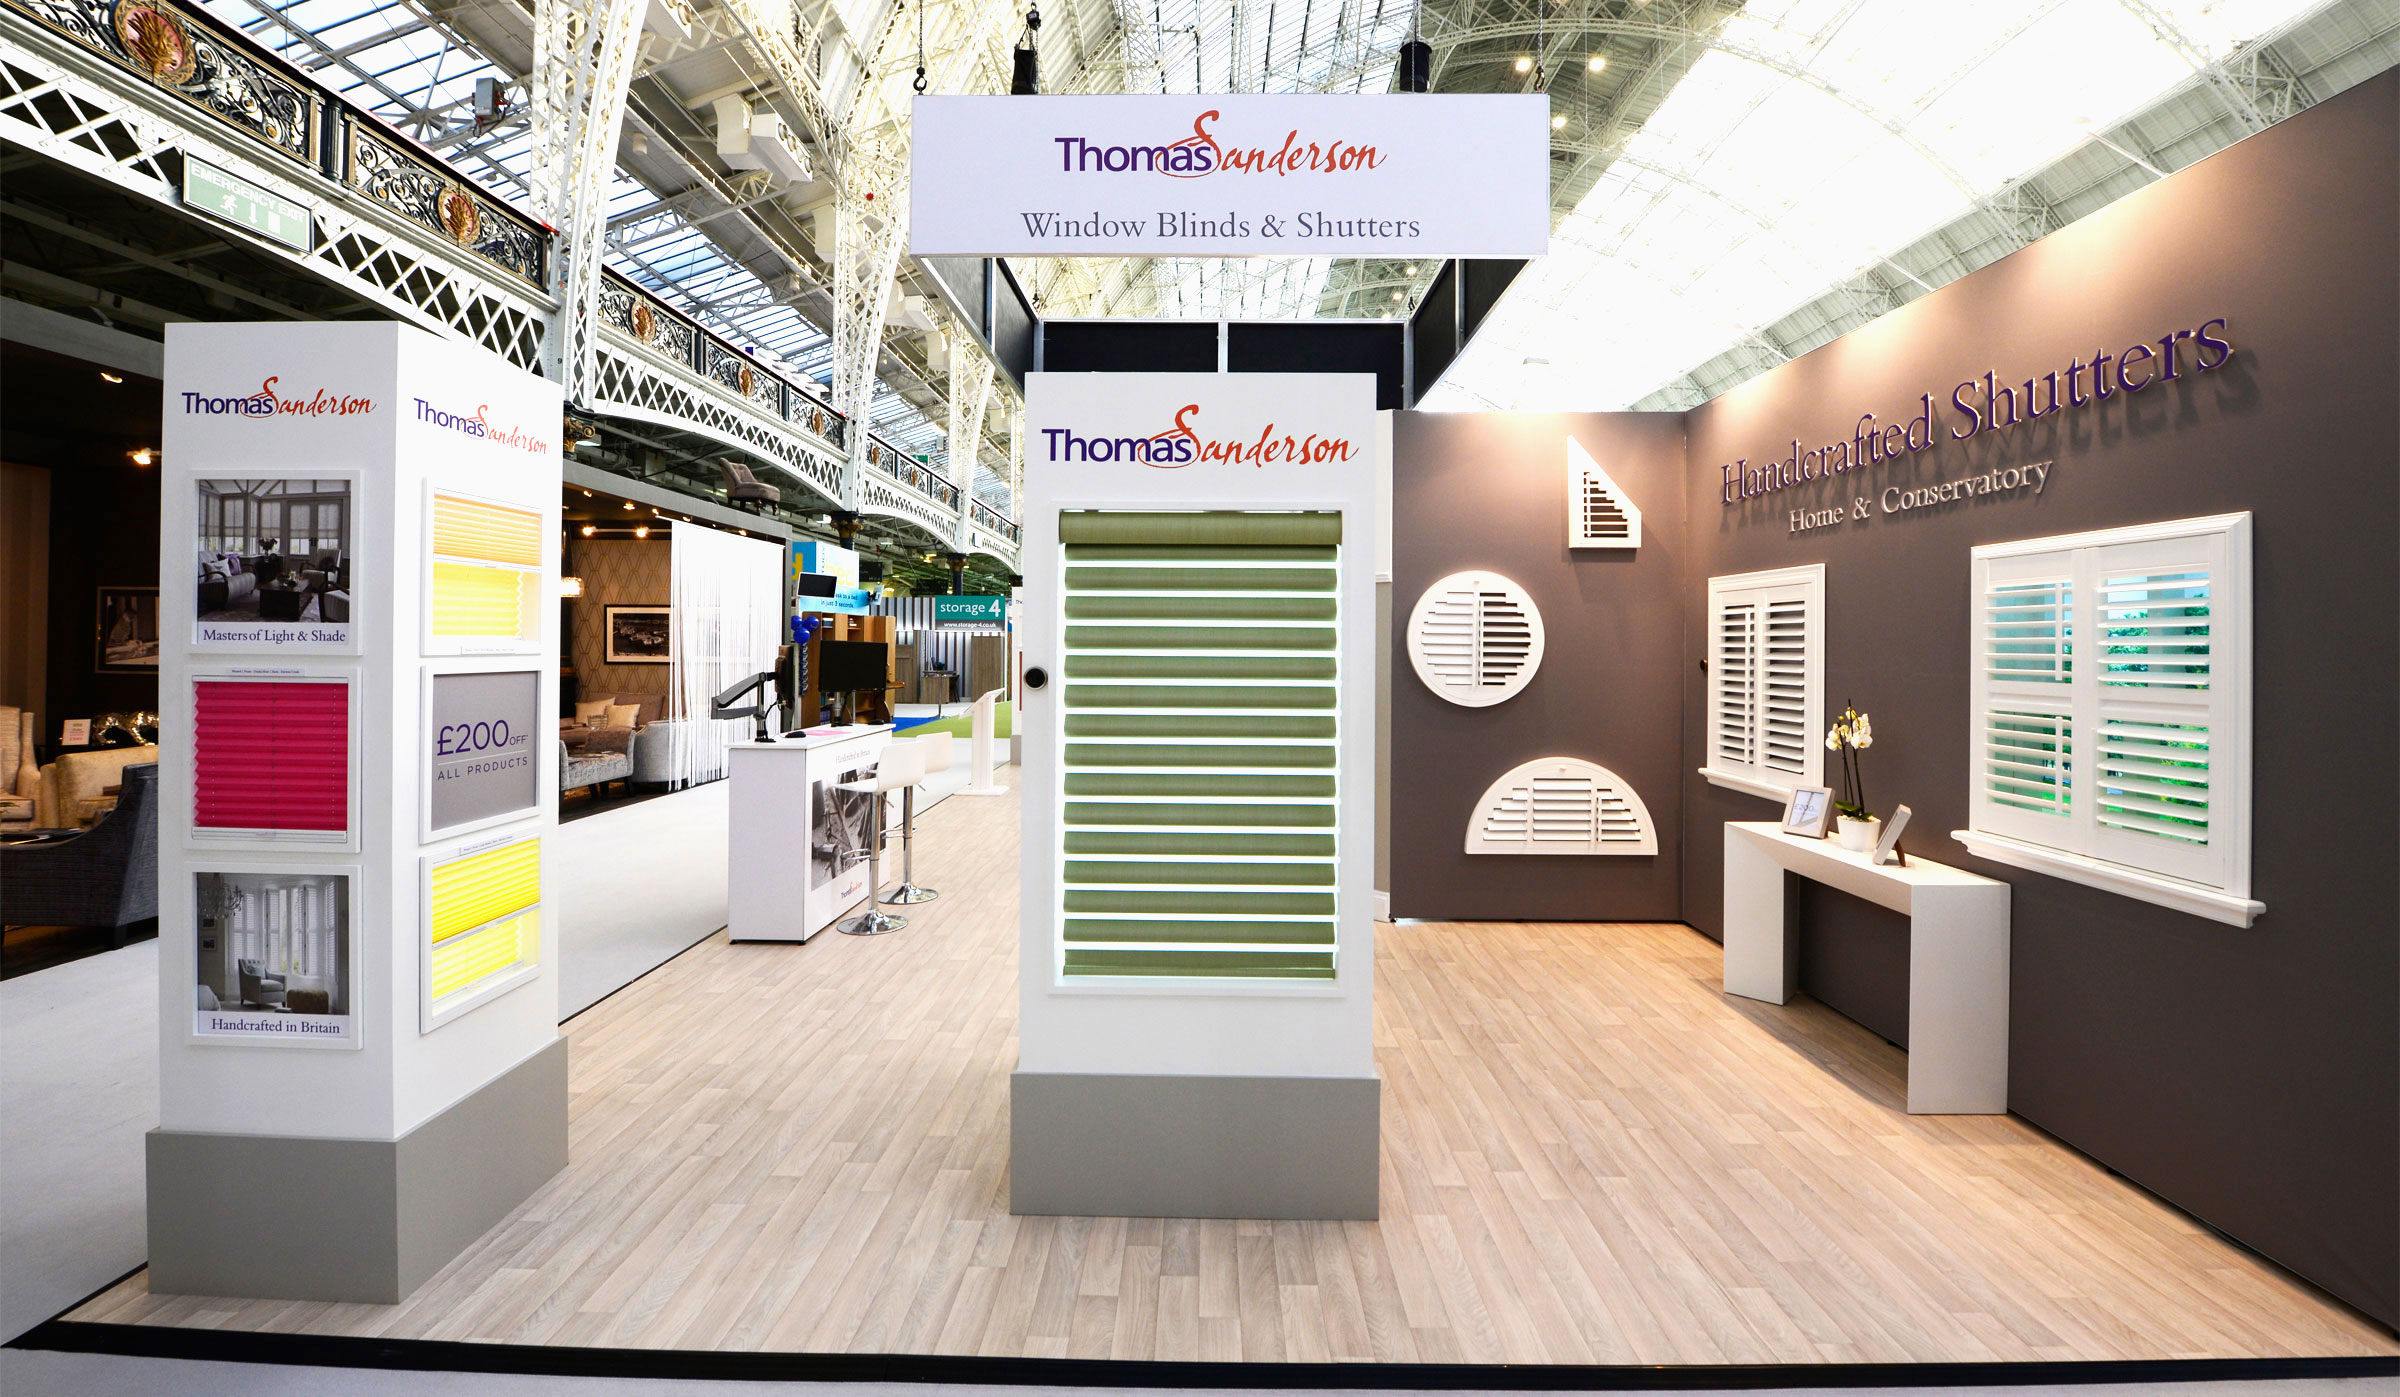 Exhibition Stand Wraps : Exhibition stand for thomas sanderson octink